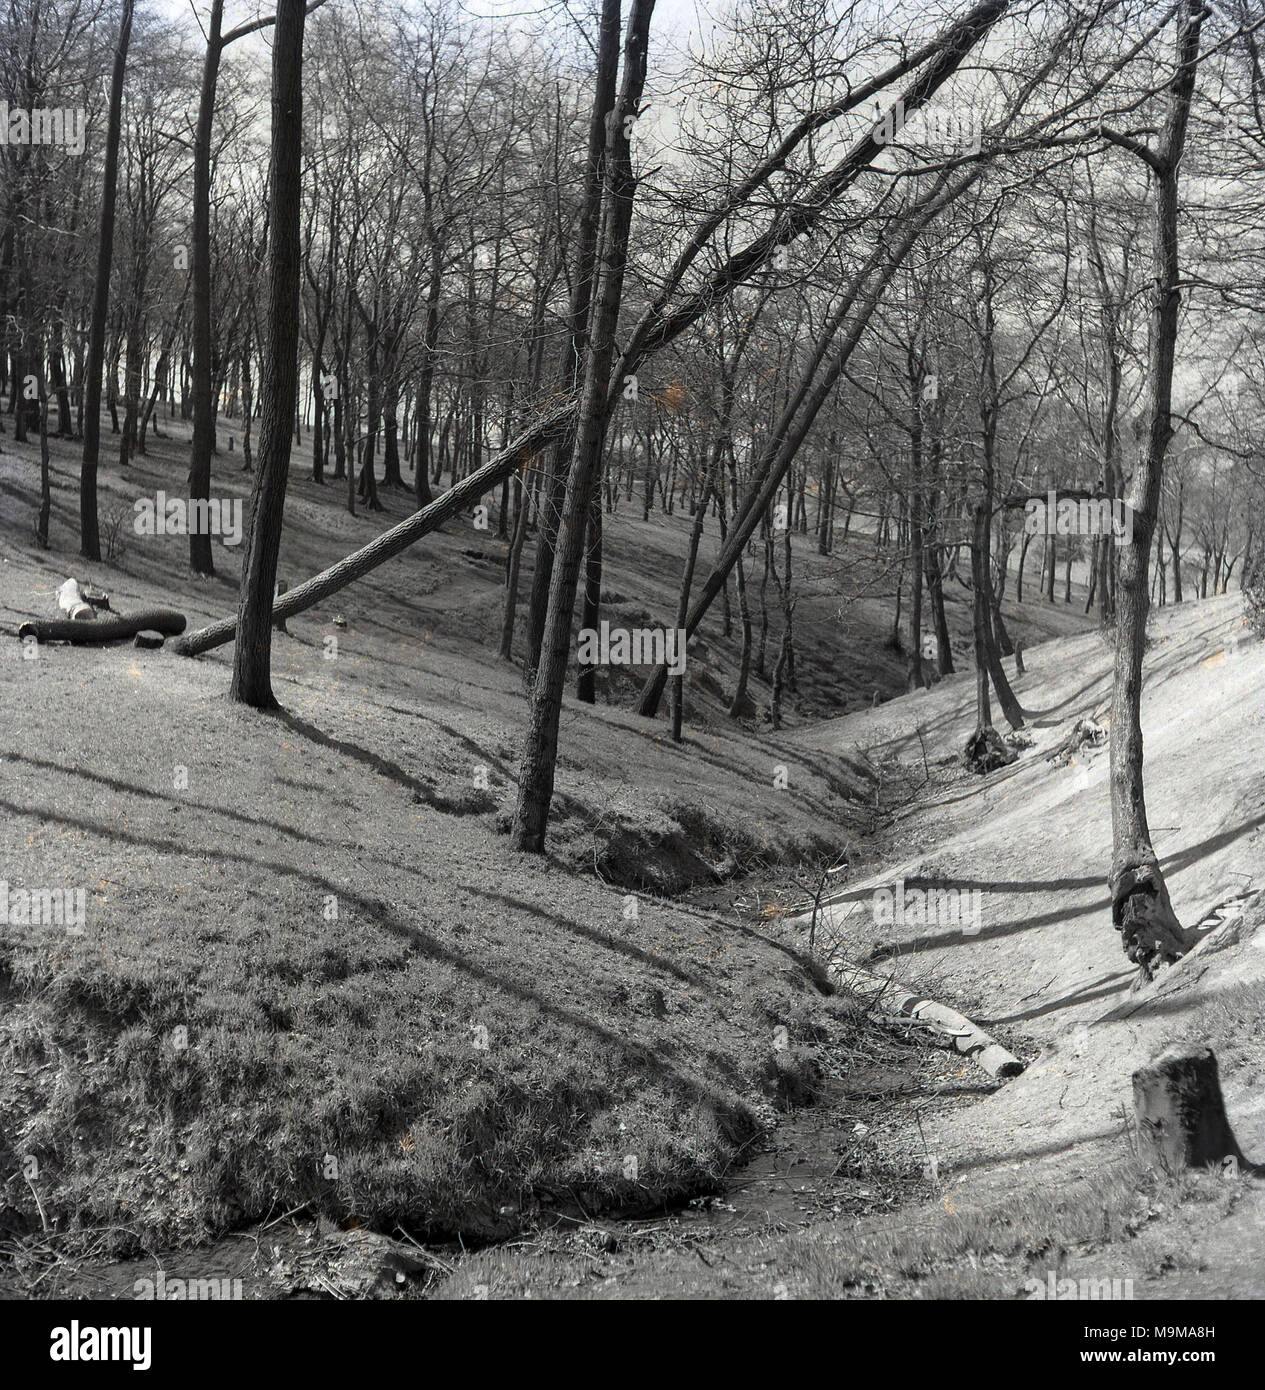 1960s, a low-level stream zig-zags through the banks of a channel or valley area in a lightly wooded forest. A body of water such as a stream plays an important 'corridor' role in connecting habitats and conserving biodiversity and are a key feature of environmental geography studies. - Stock Image